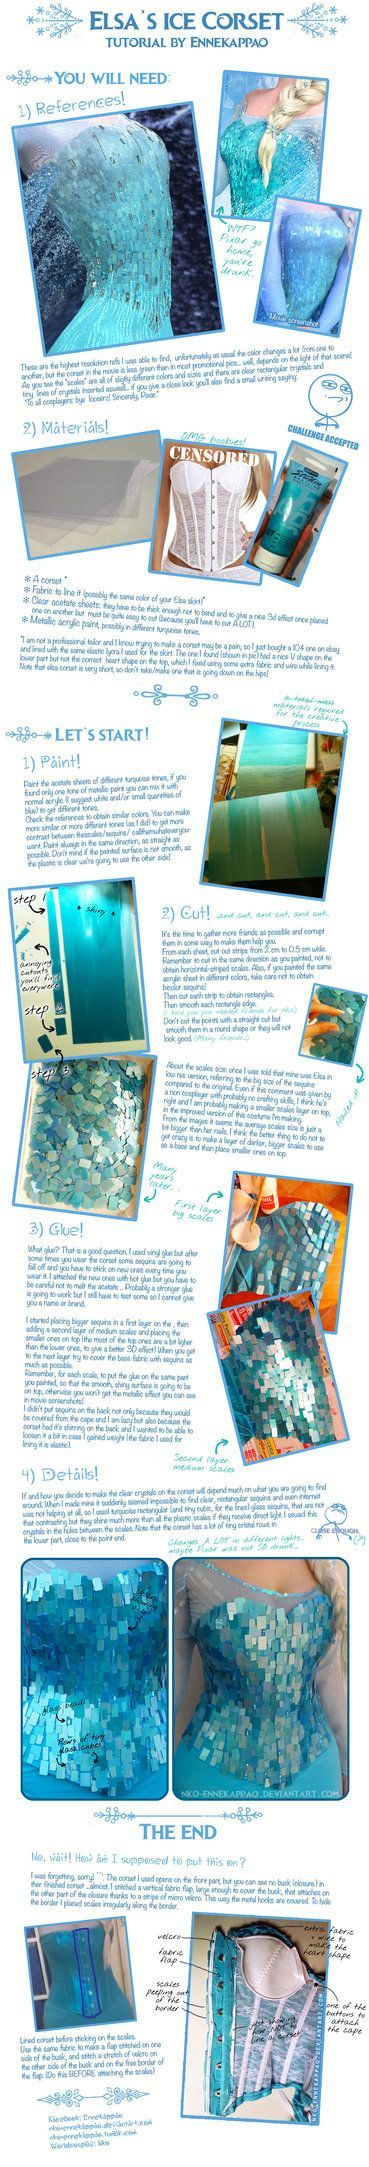 [Click DOWNLOAD FOR FULL VIEW] I made my Elsa corset in 2014 a bit after the movie came out and there were no tutorials available. After considering a lot of options I thought of this method to try...